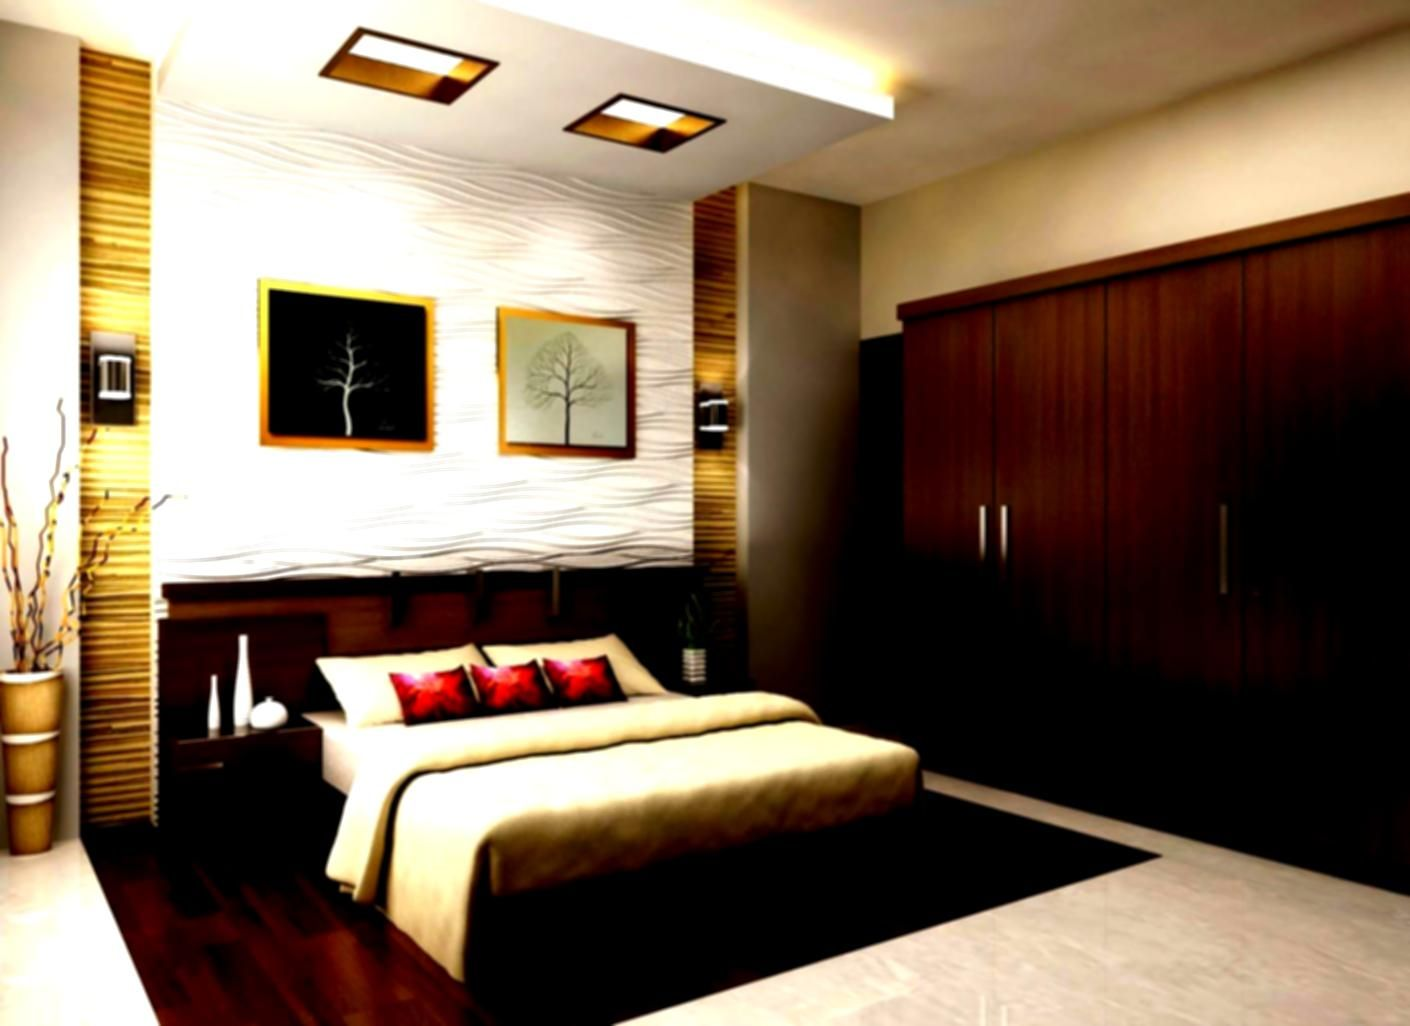 25 best master bedroom interior design ideas master 20871 | b8d178c4d5679d786ae13b57758b9759